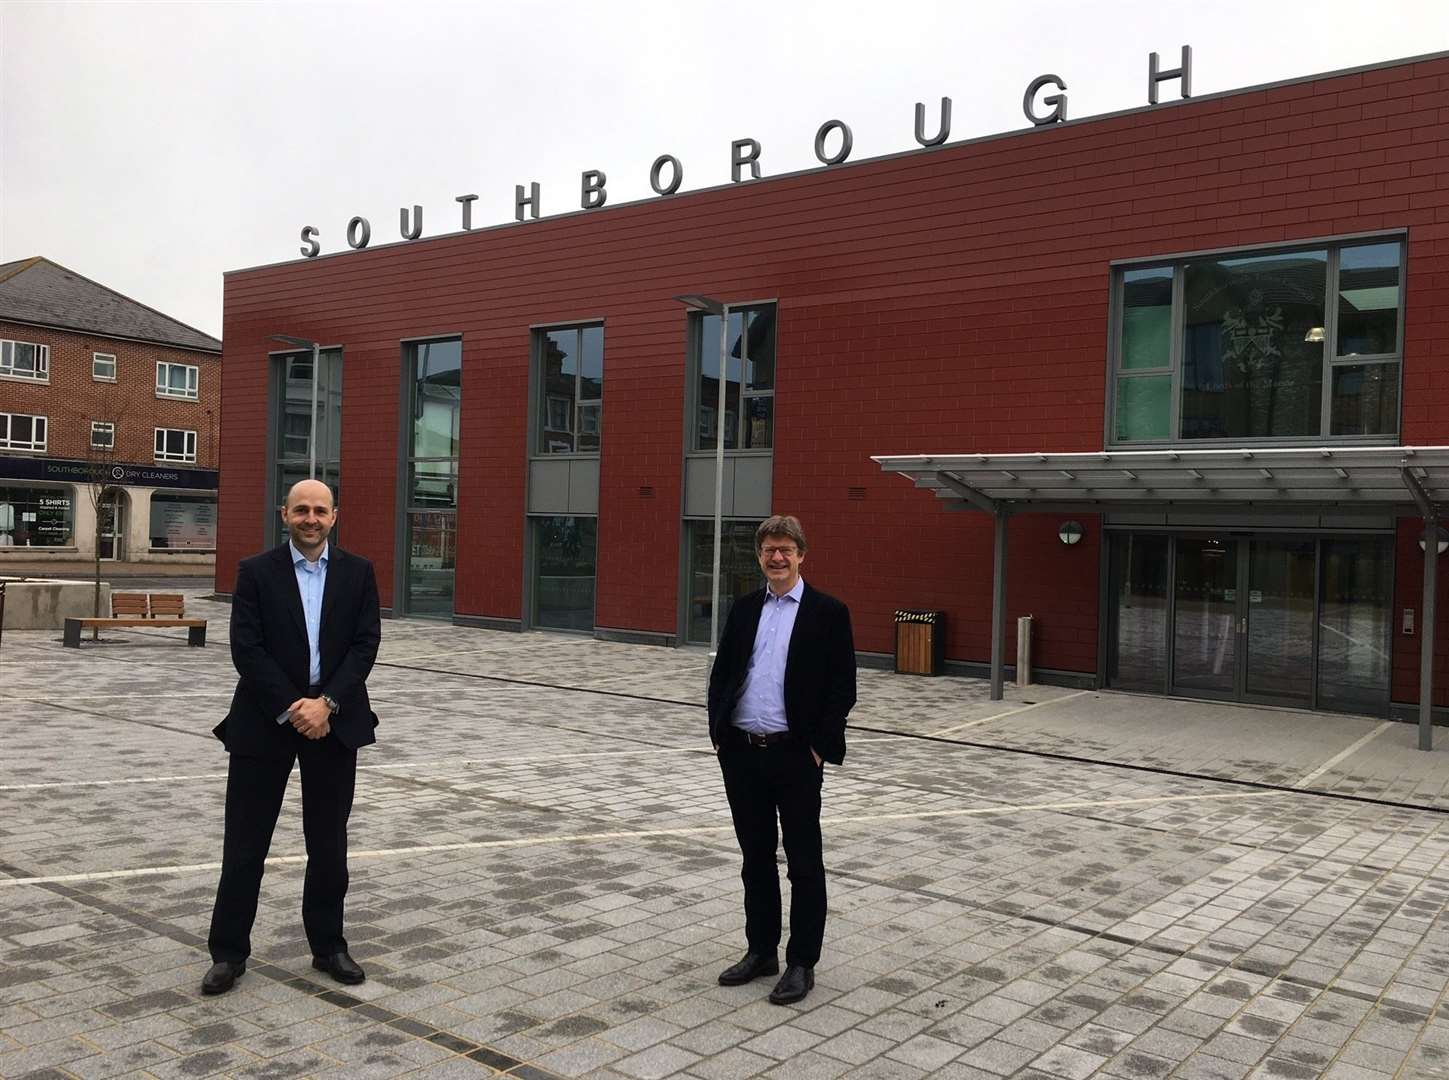 Project manager Jonathan White, left, with MP Greg Clark outside the new civic centre in Southborough